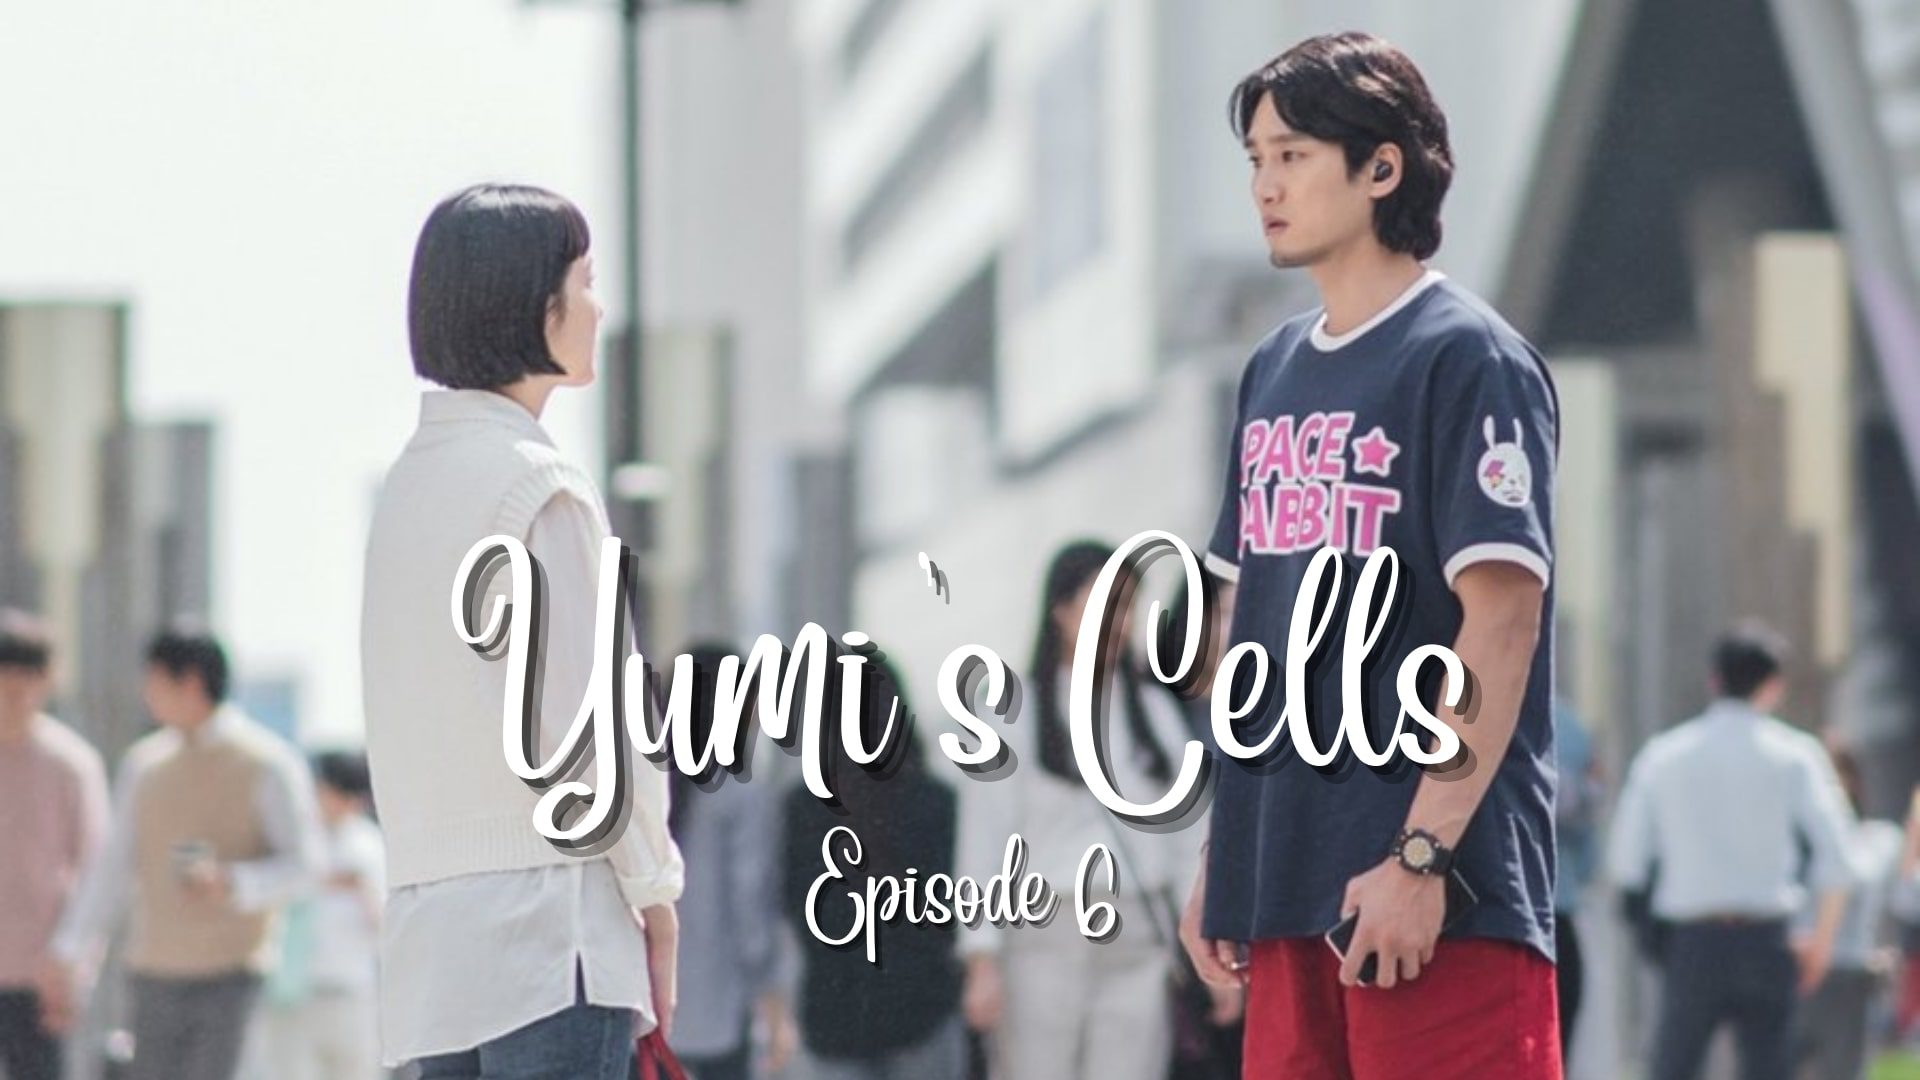 Yumi's Cells Episode 6